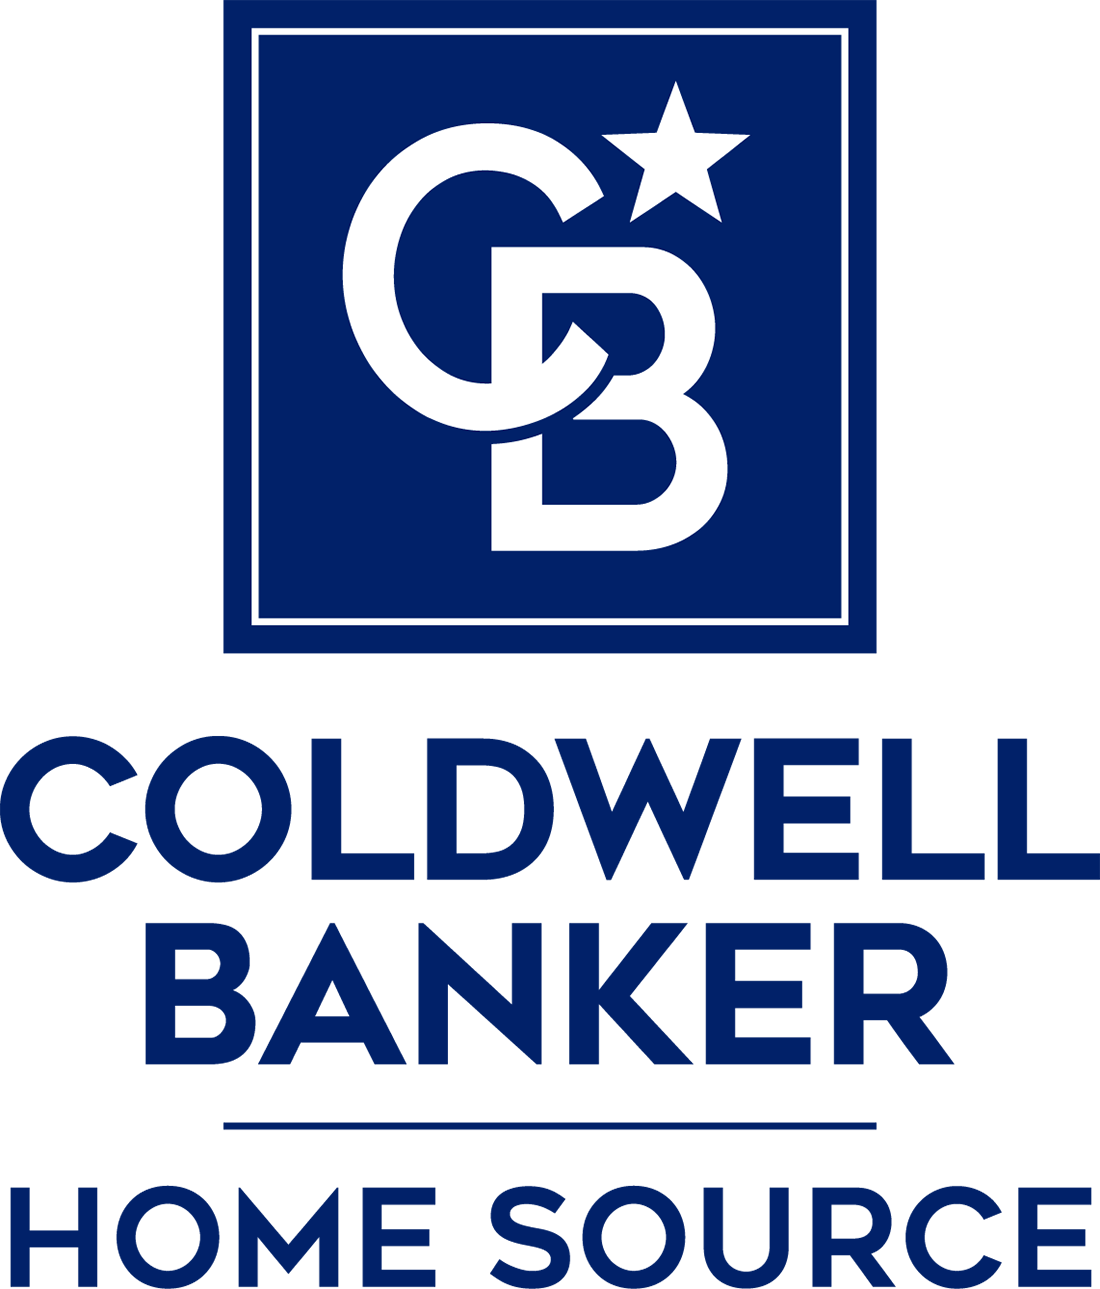 Beverly Bower - Coldwell Banker Home Source Logo